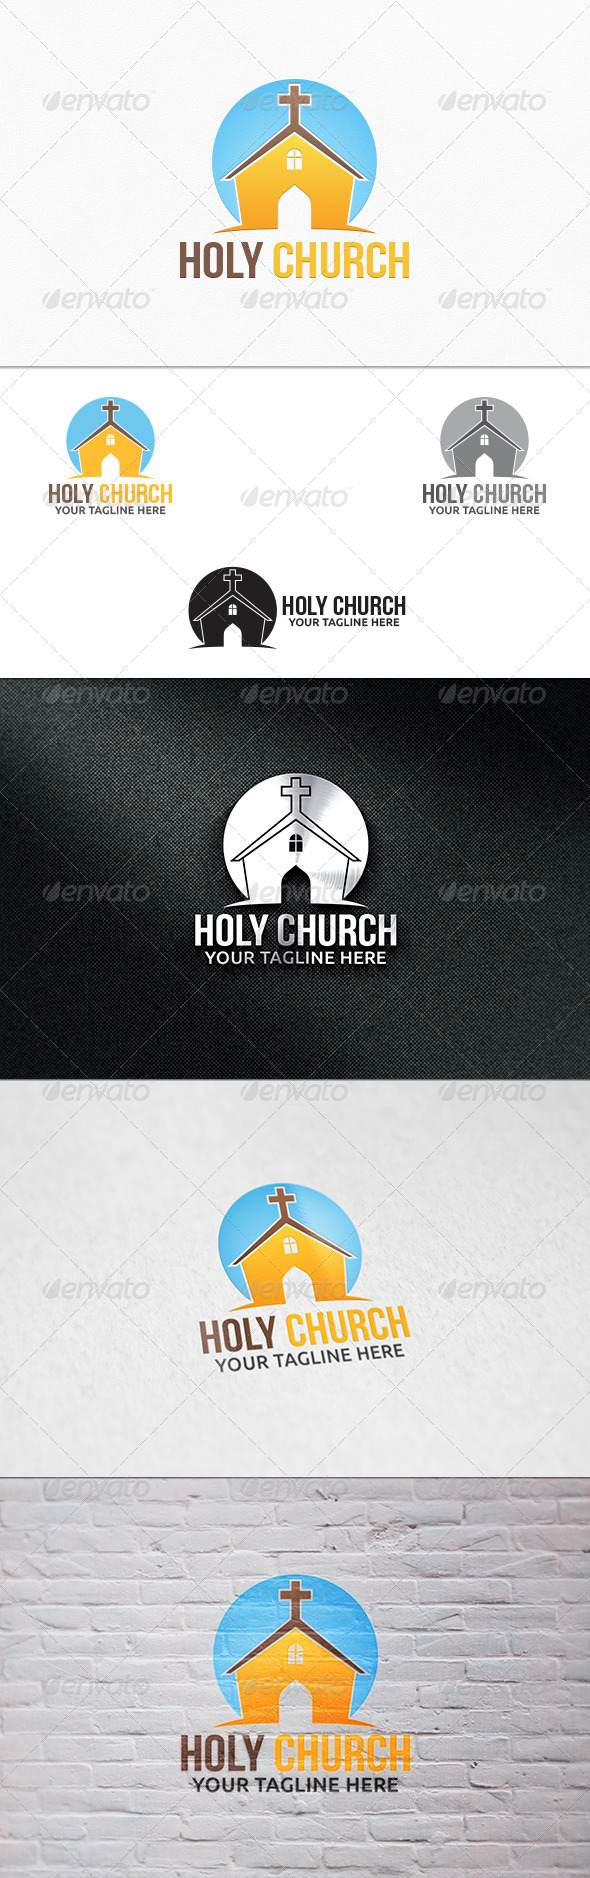 GraphicRiver Holy Church Logo Template 7325265